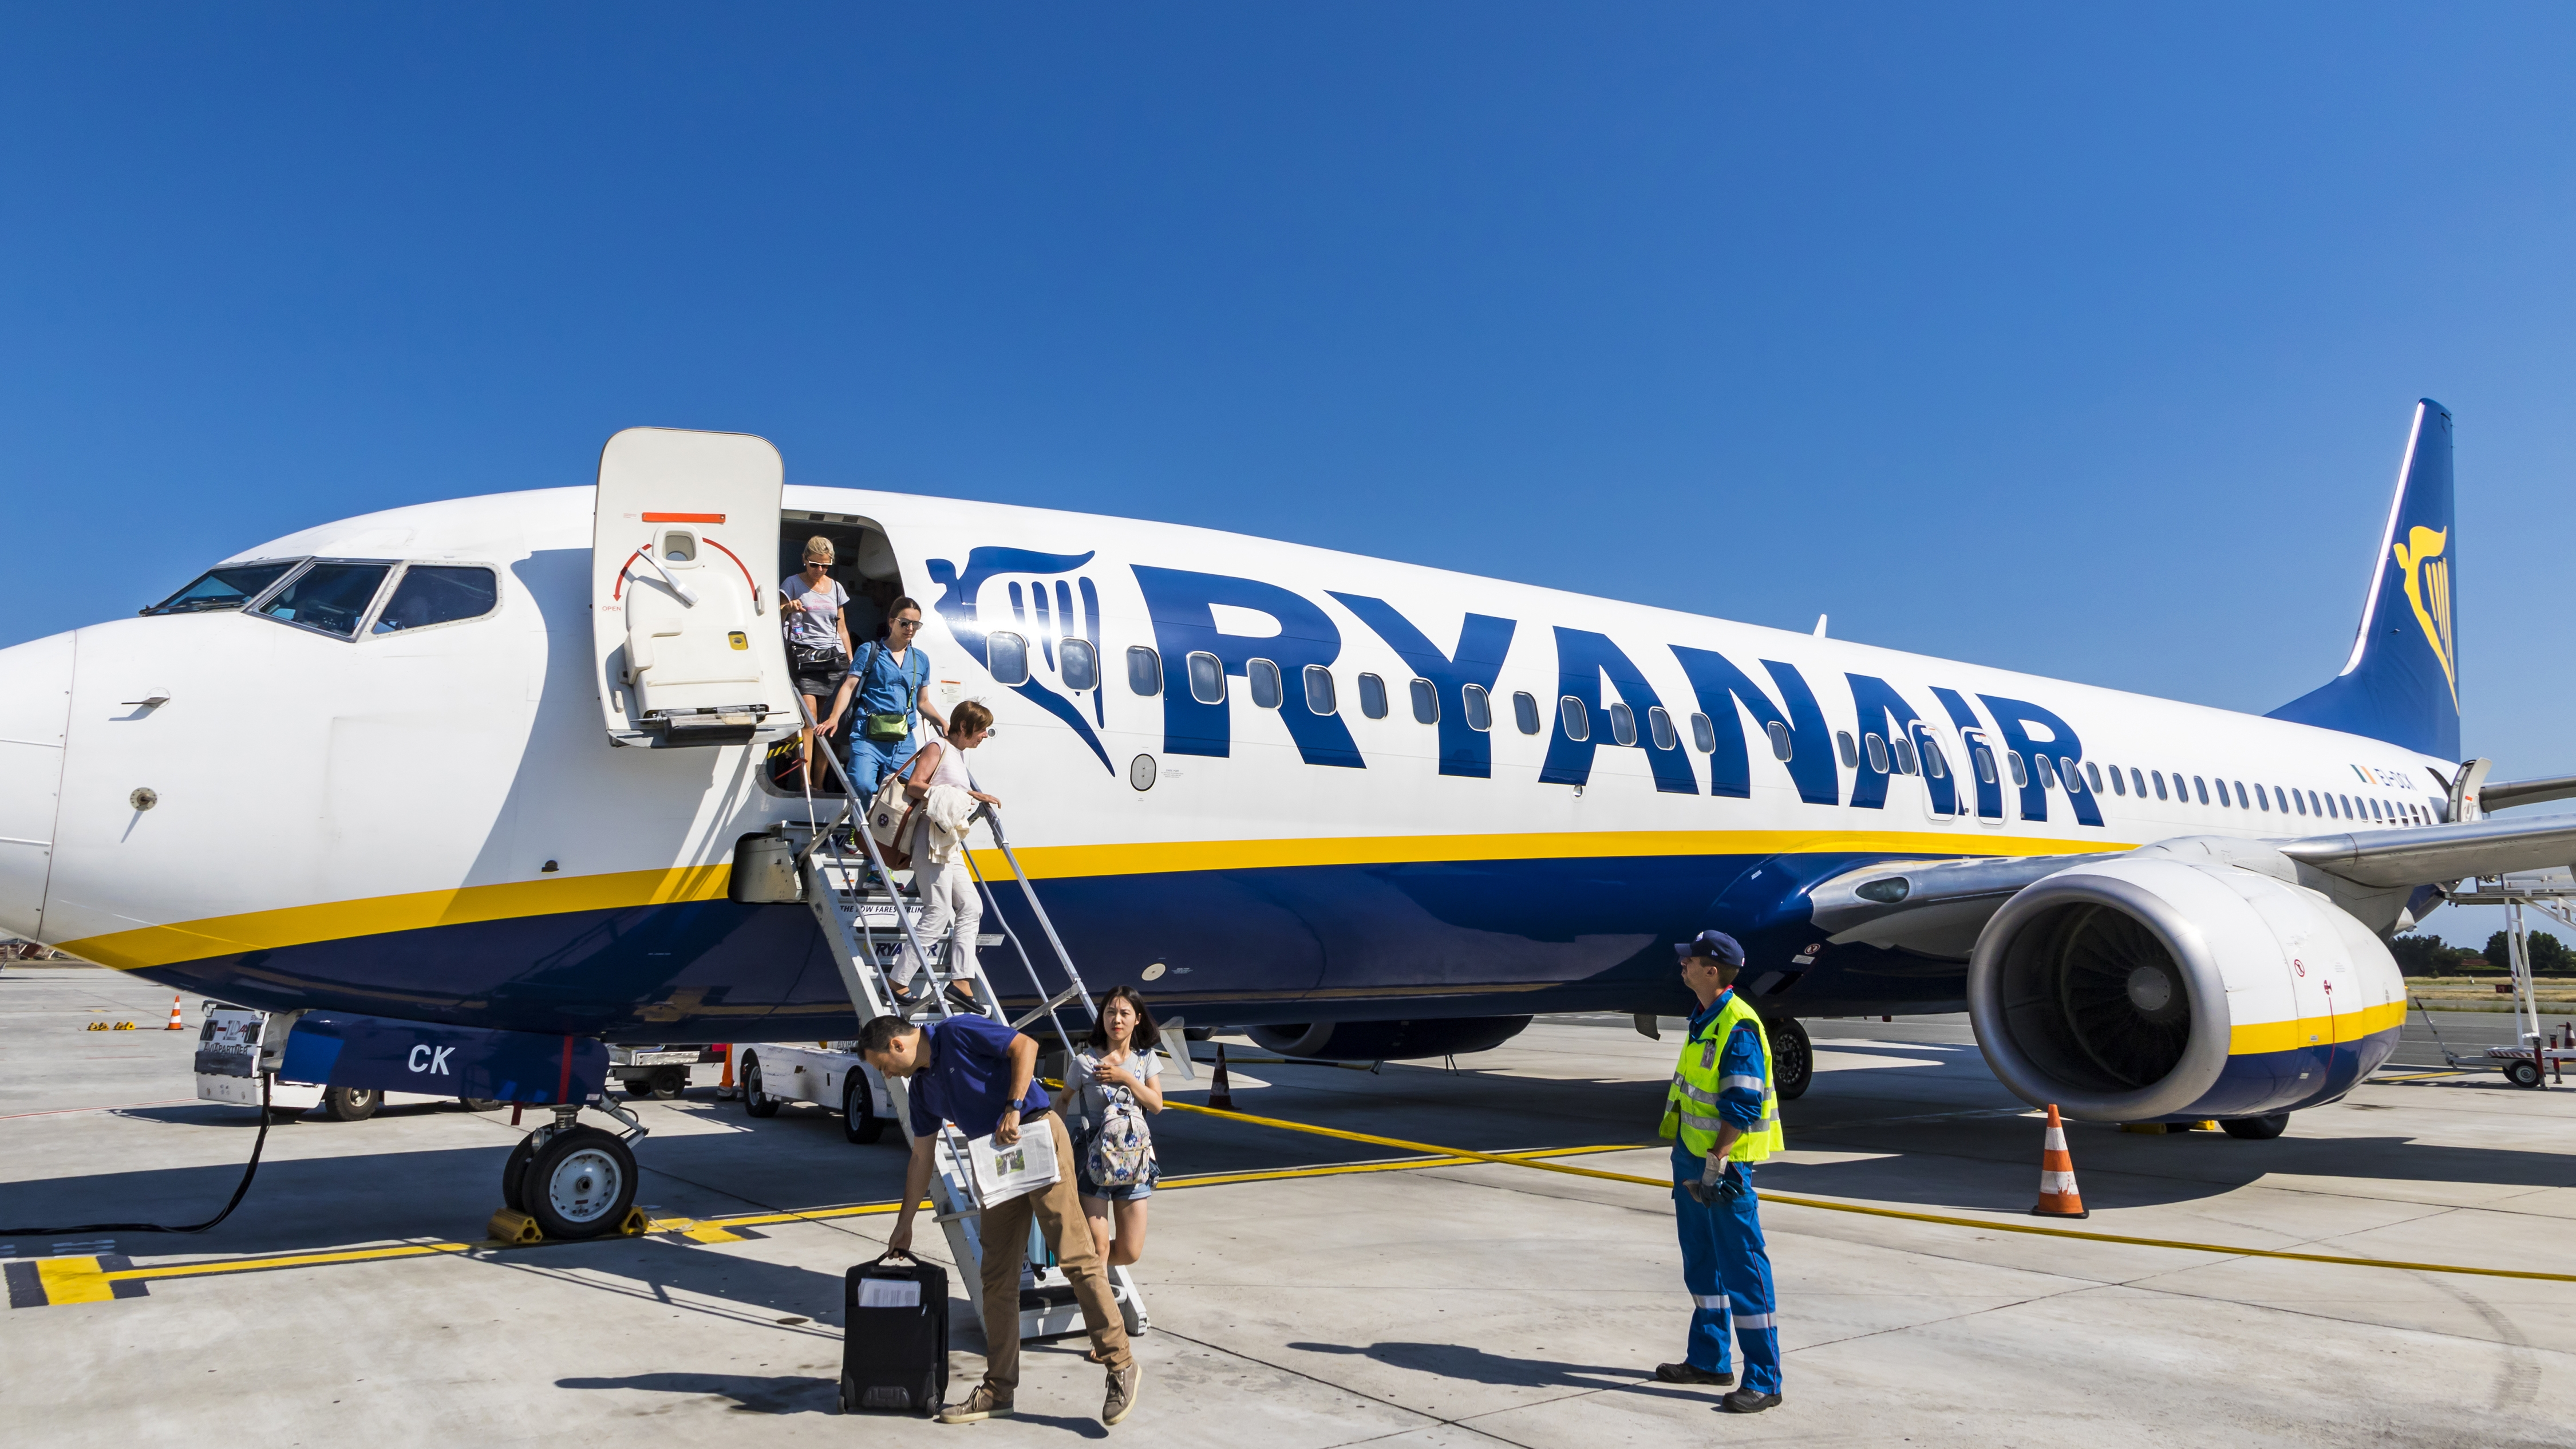 Do you need to include middle names when booking flights ryanair